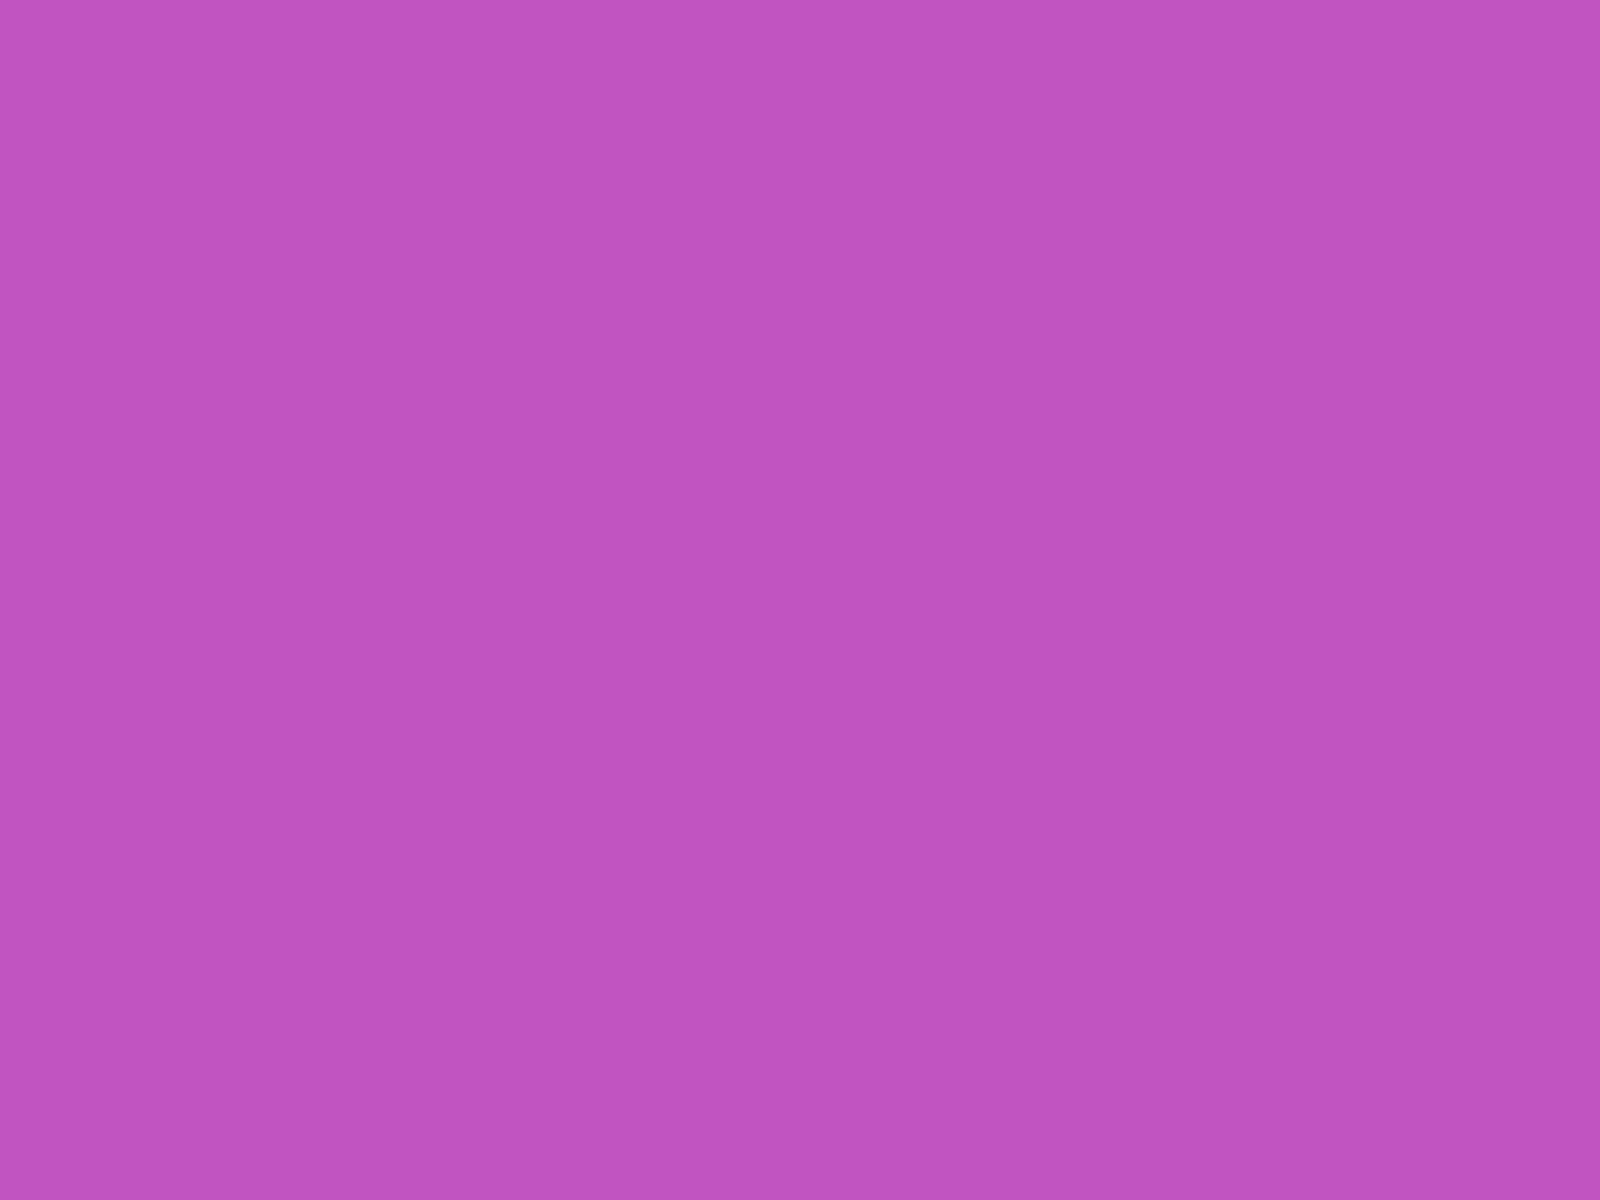 1600x1200 Deep Fuchsia Solid Color Background